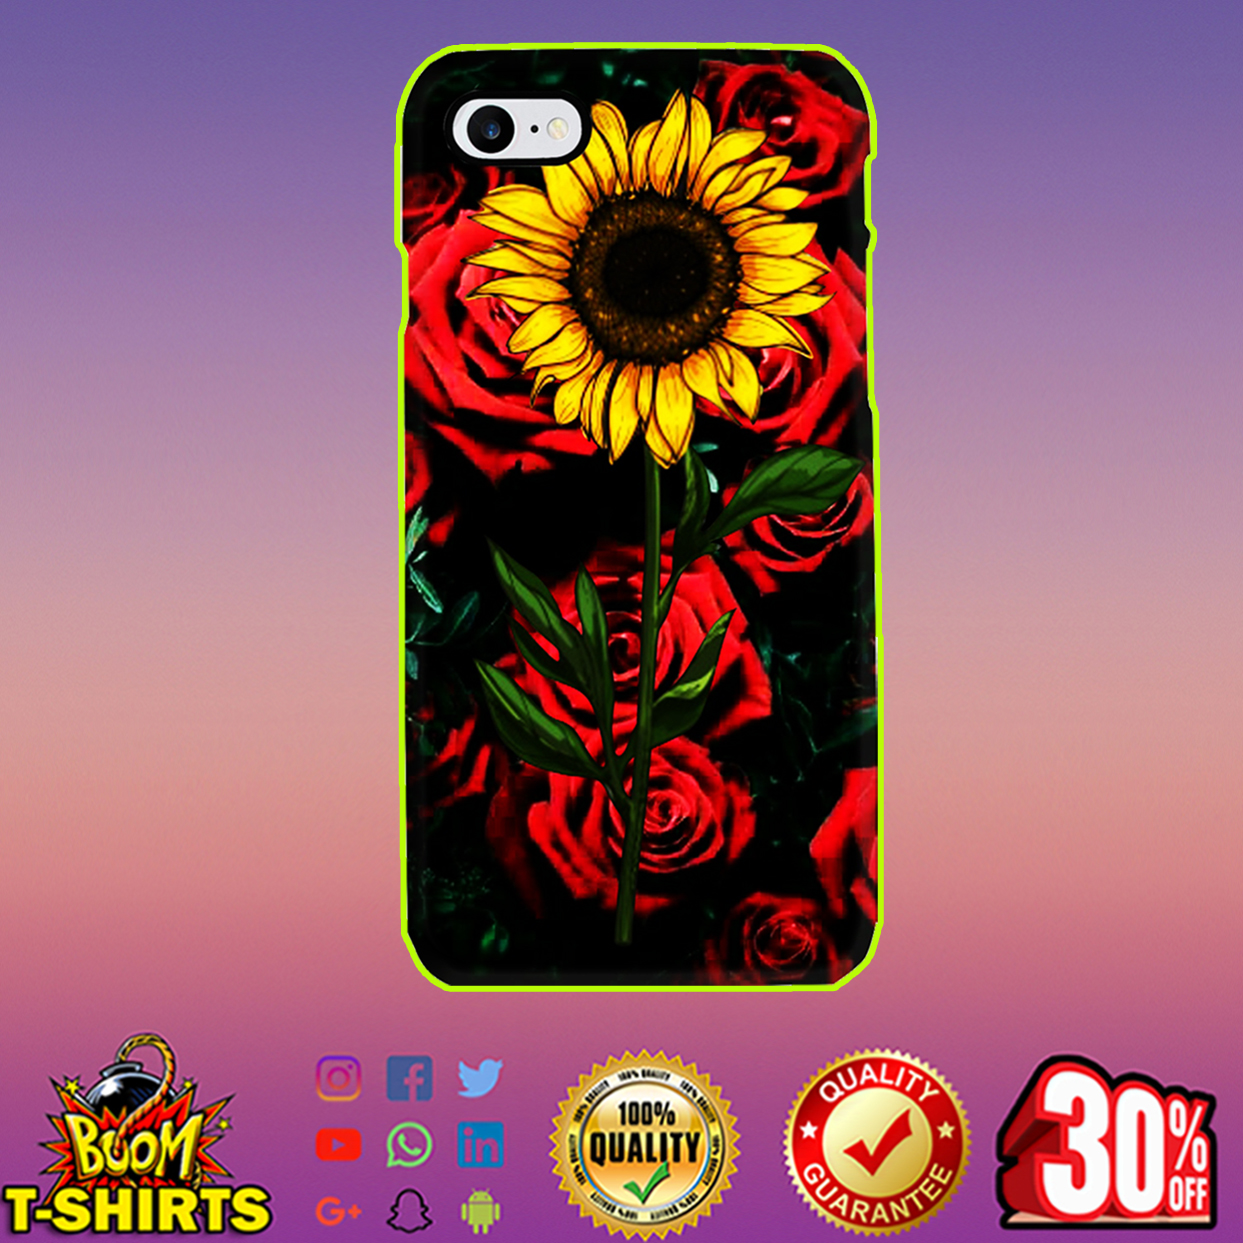 Sunflower and roses phone case - iphone 8 case